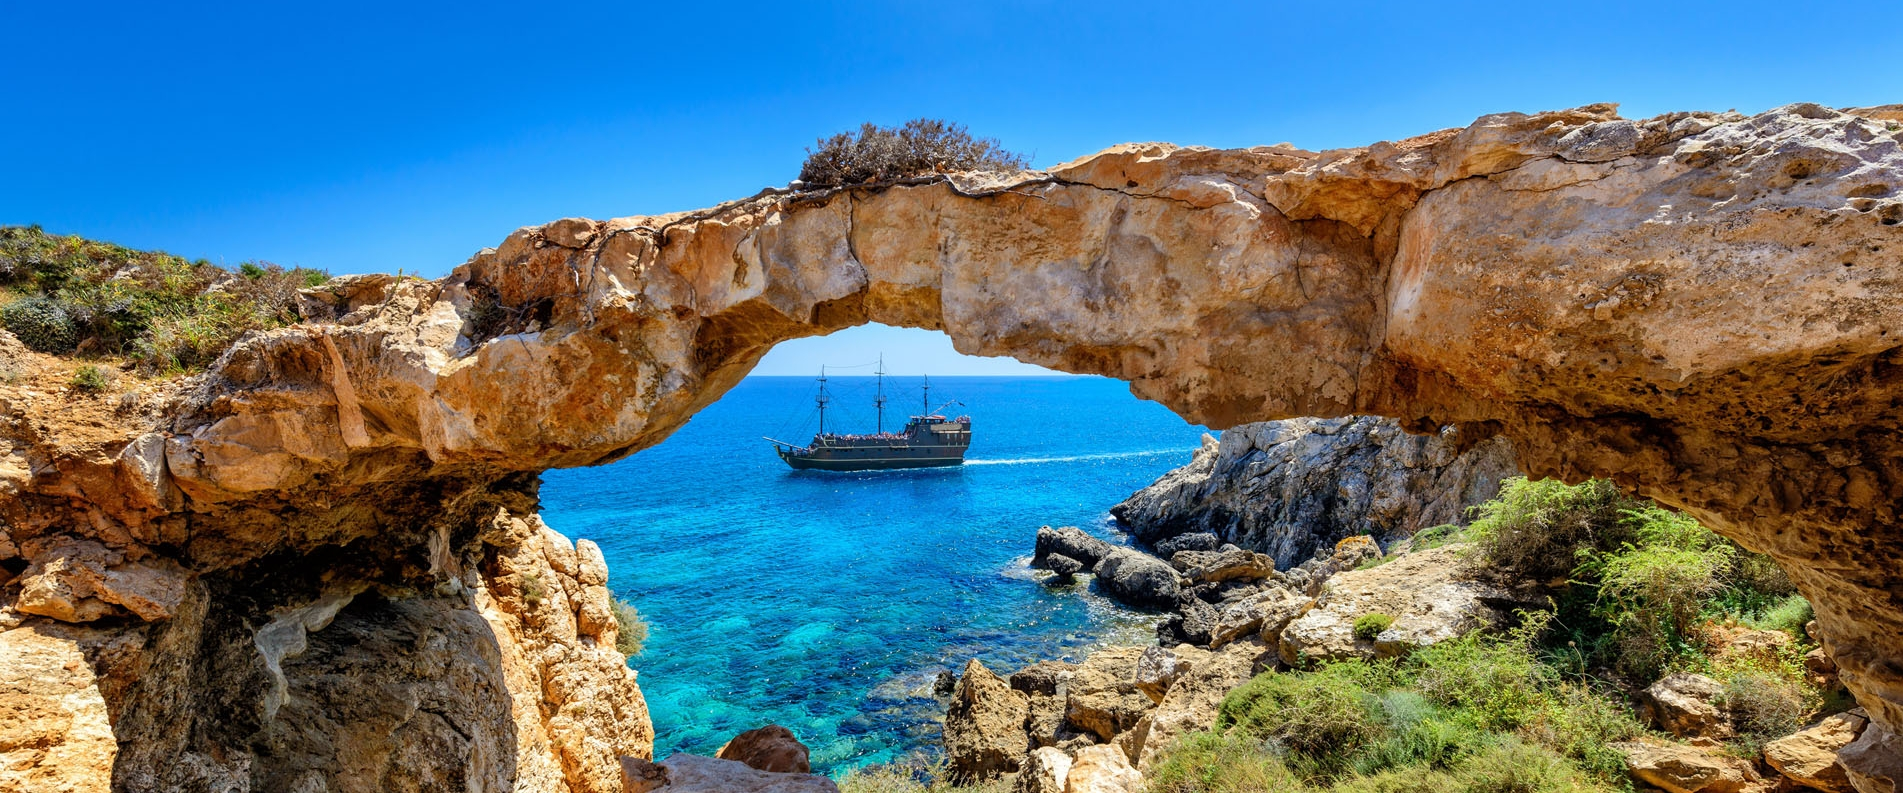 Things to do in Ayia Napa: landmarks, tourist attractions and restaurants